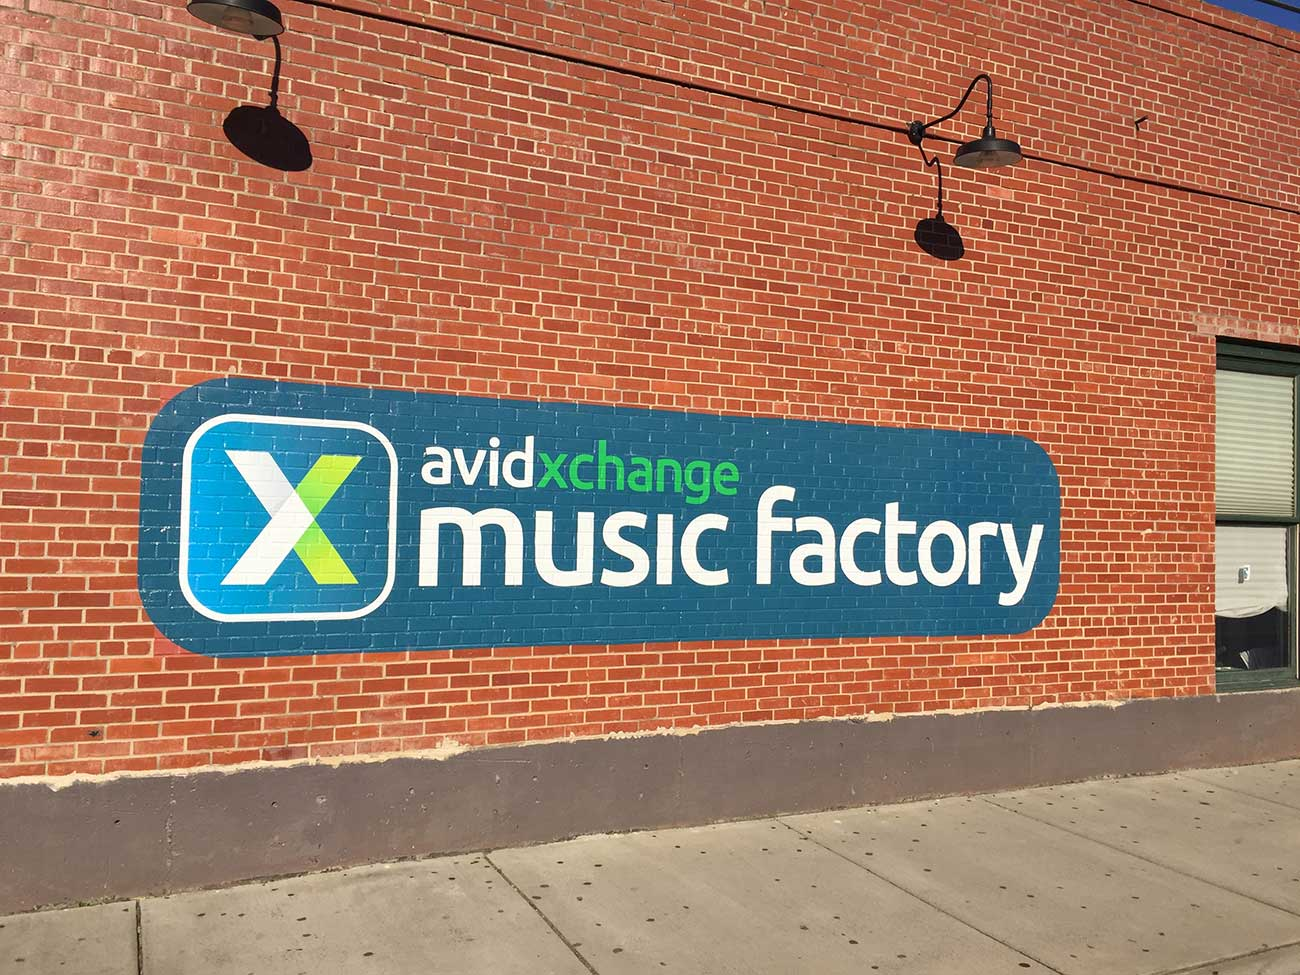 The N.C. Music Factory has a new name